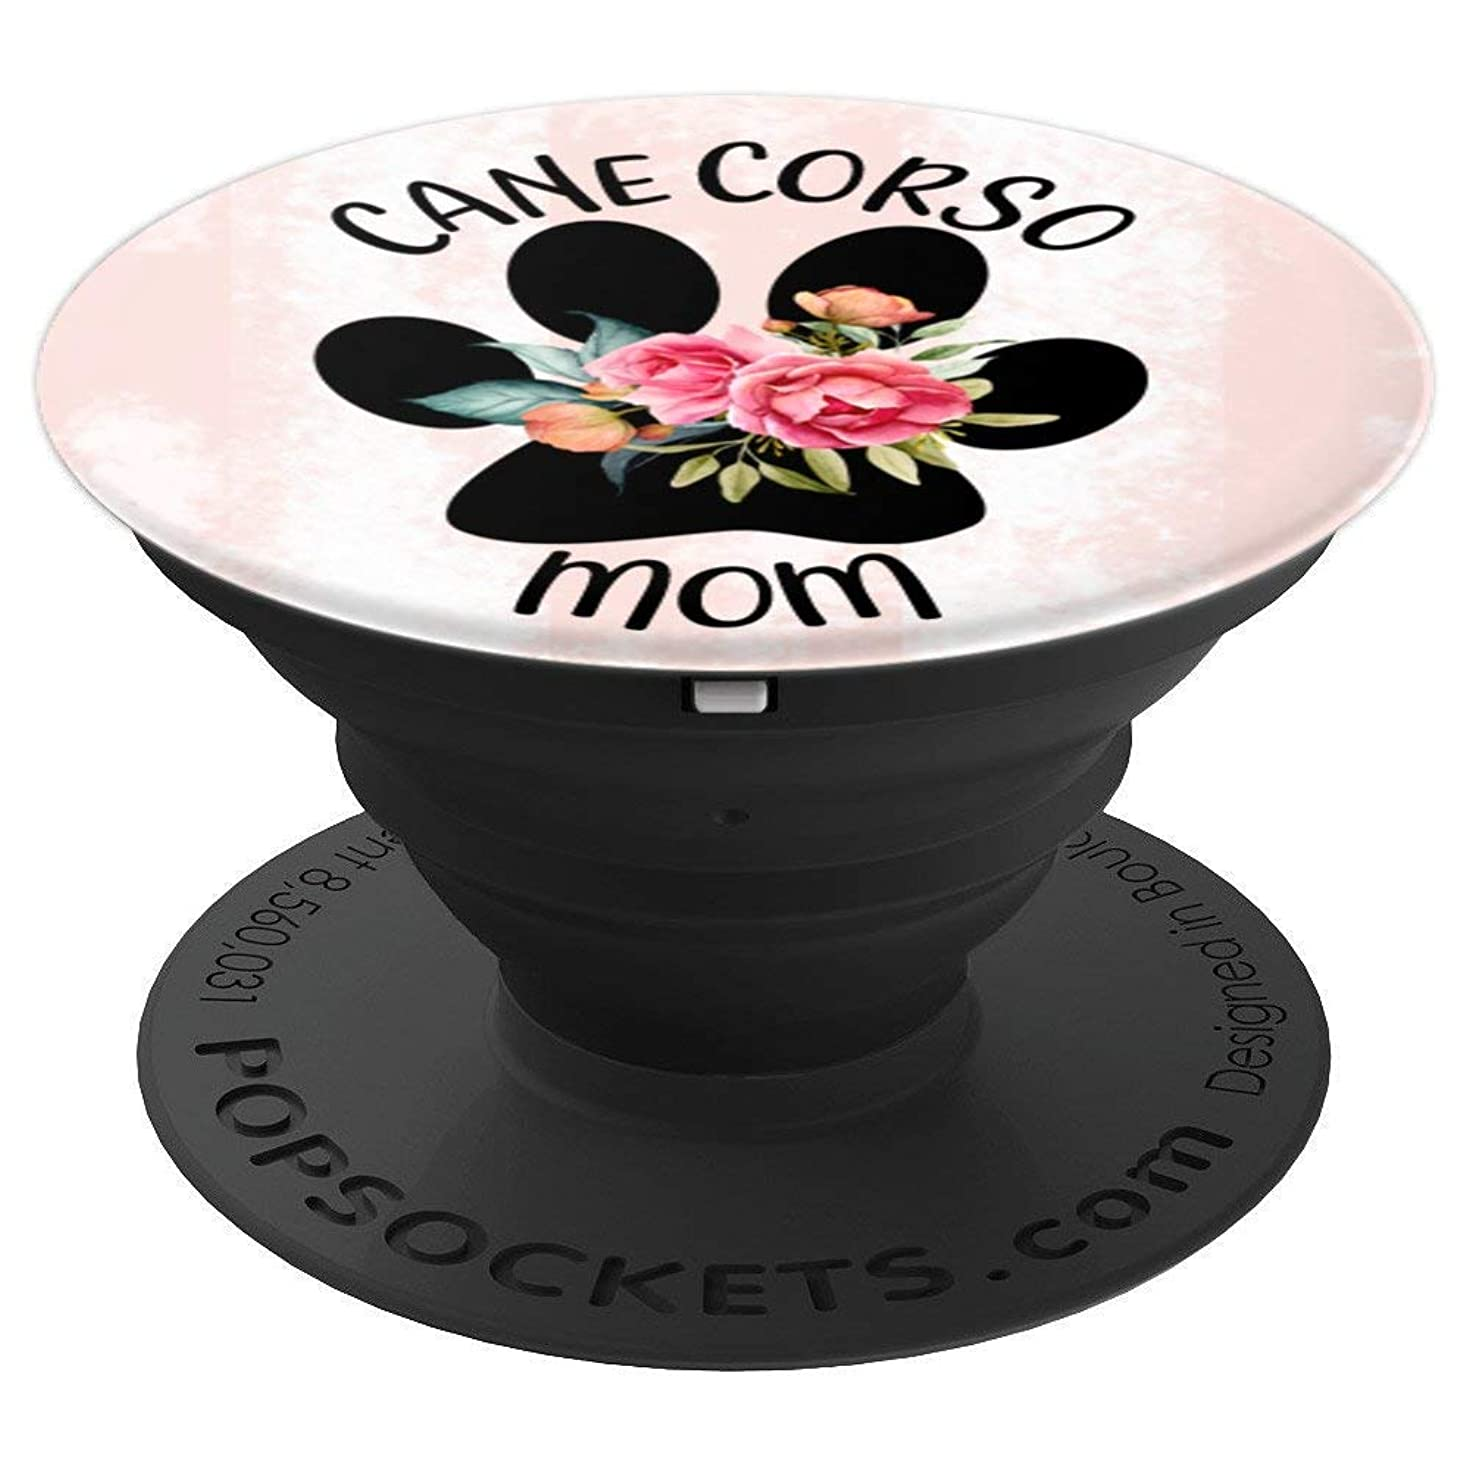 Cane Corso Mom - PopSockets Grip and Stand for Phones and Tablets